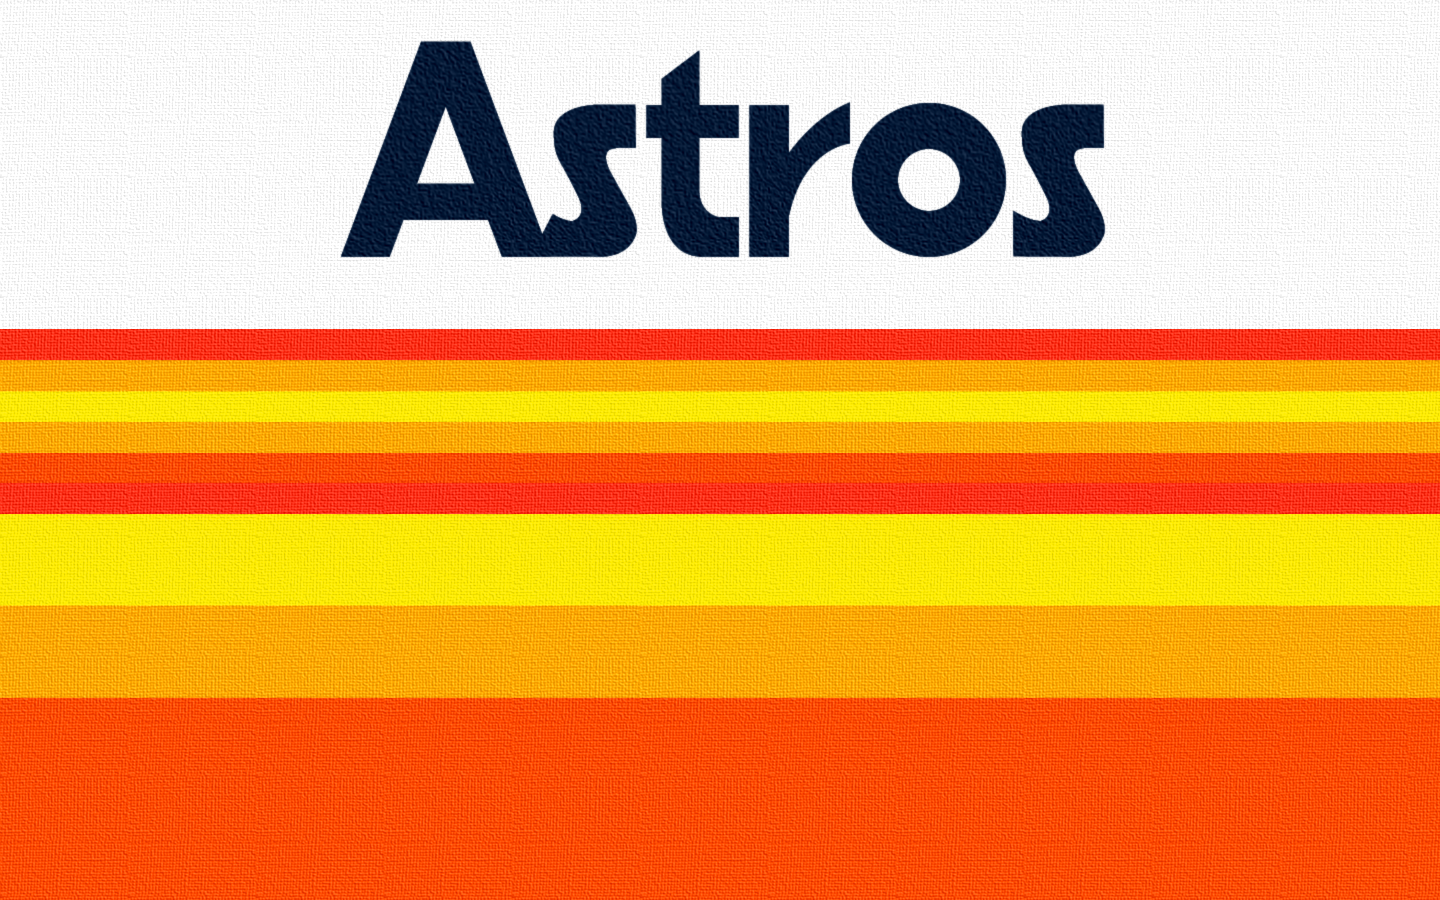 Astros fan? Share if you love this throwback logo